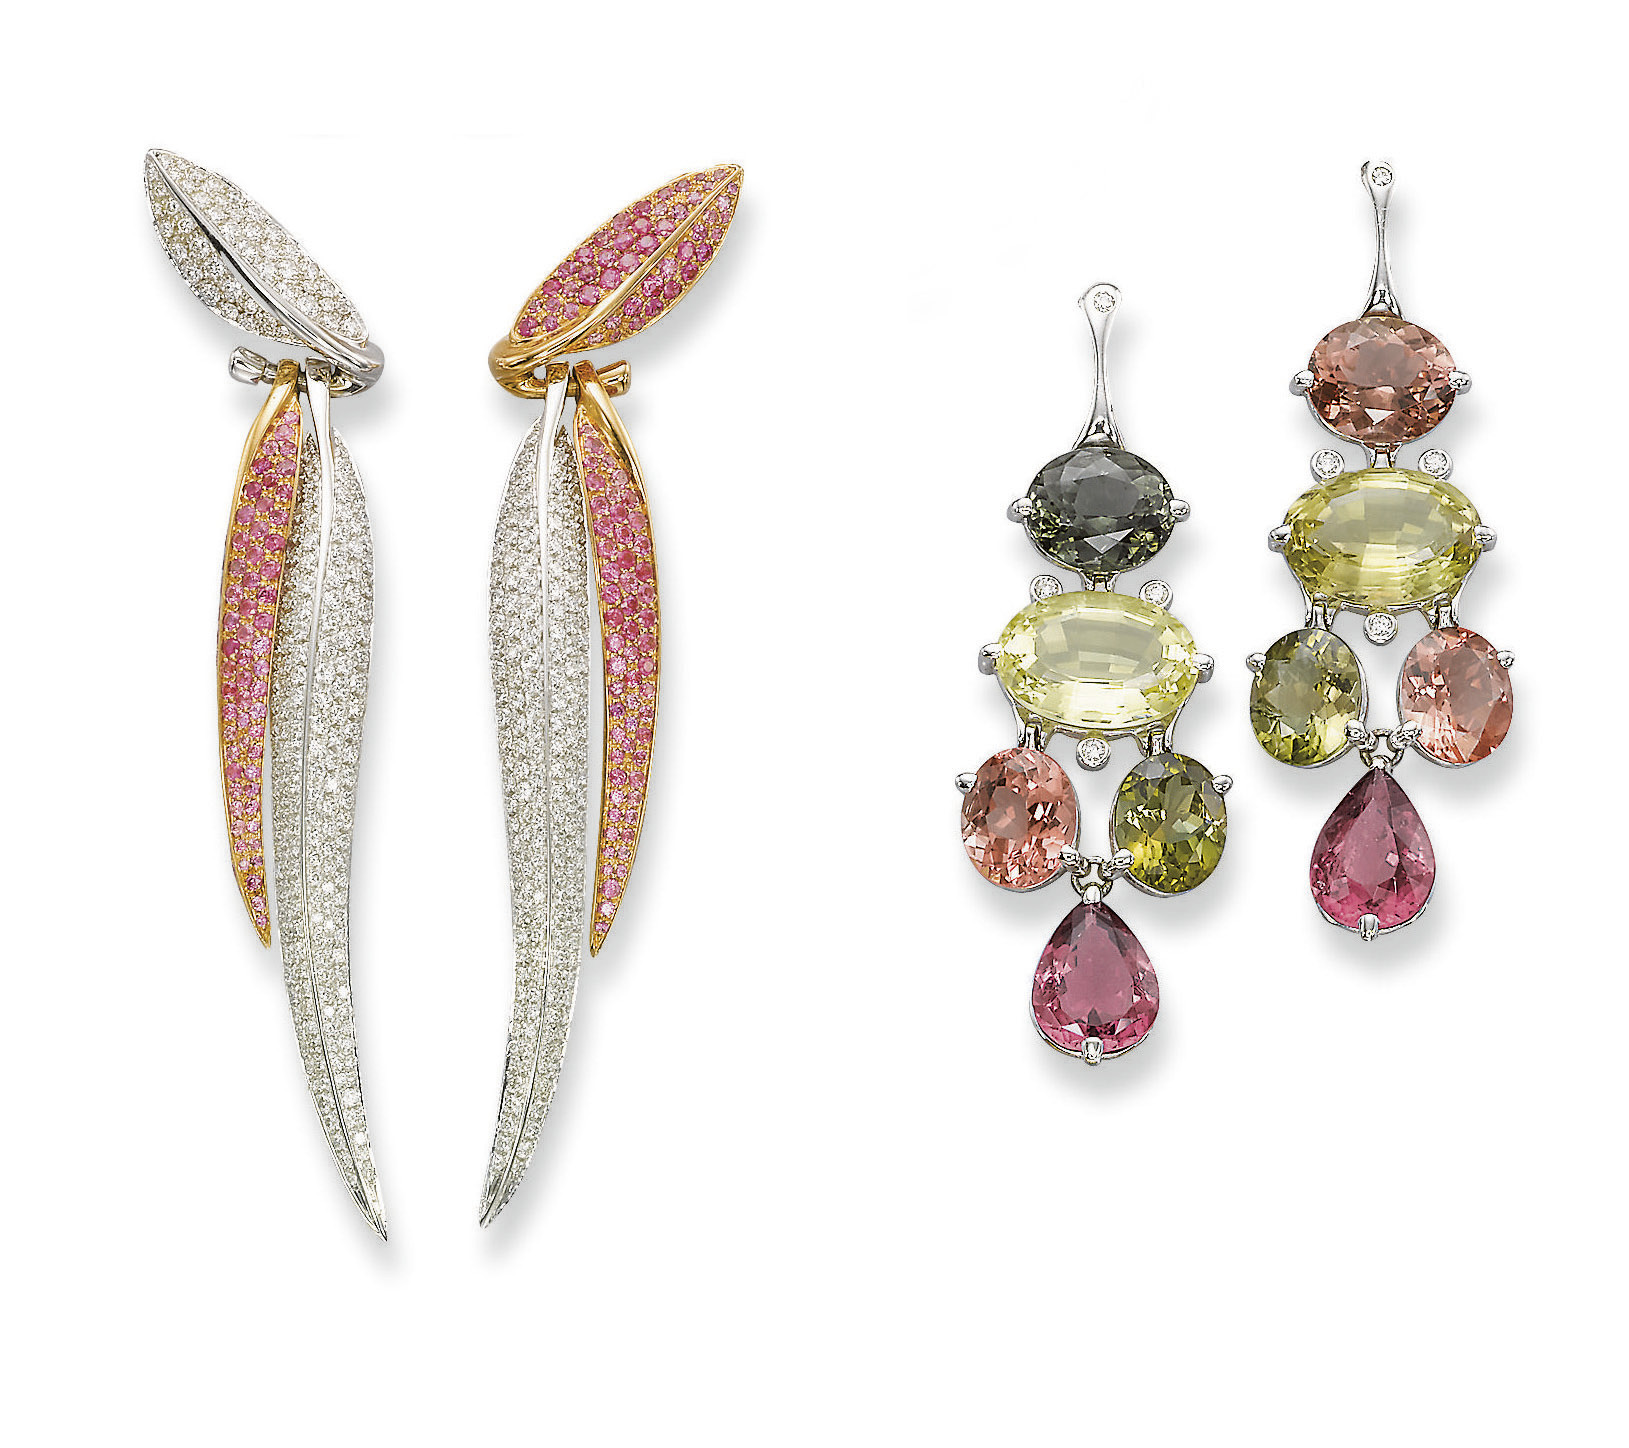 TWO PAIRS OF GEM-SET AND DIAMO